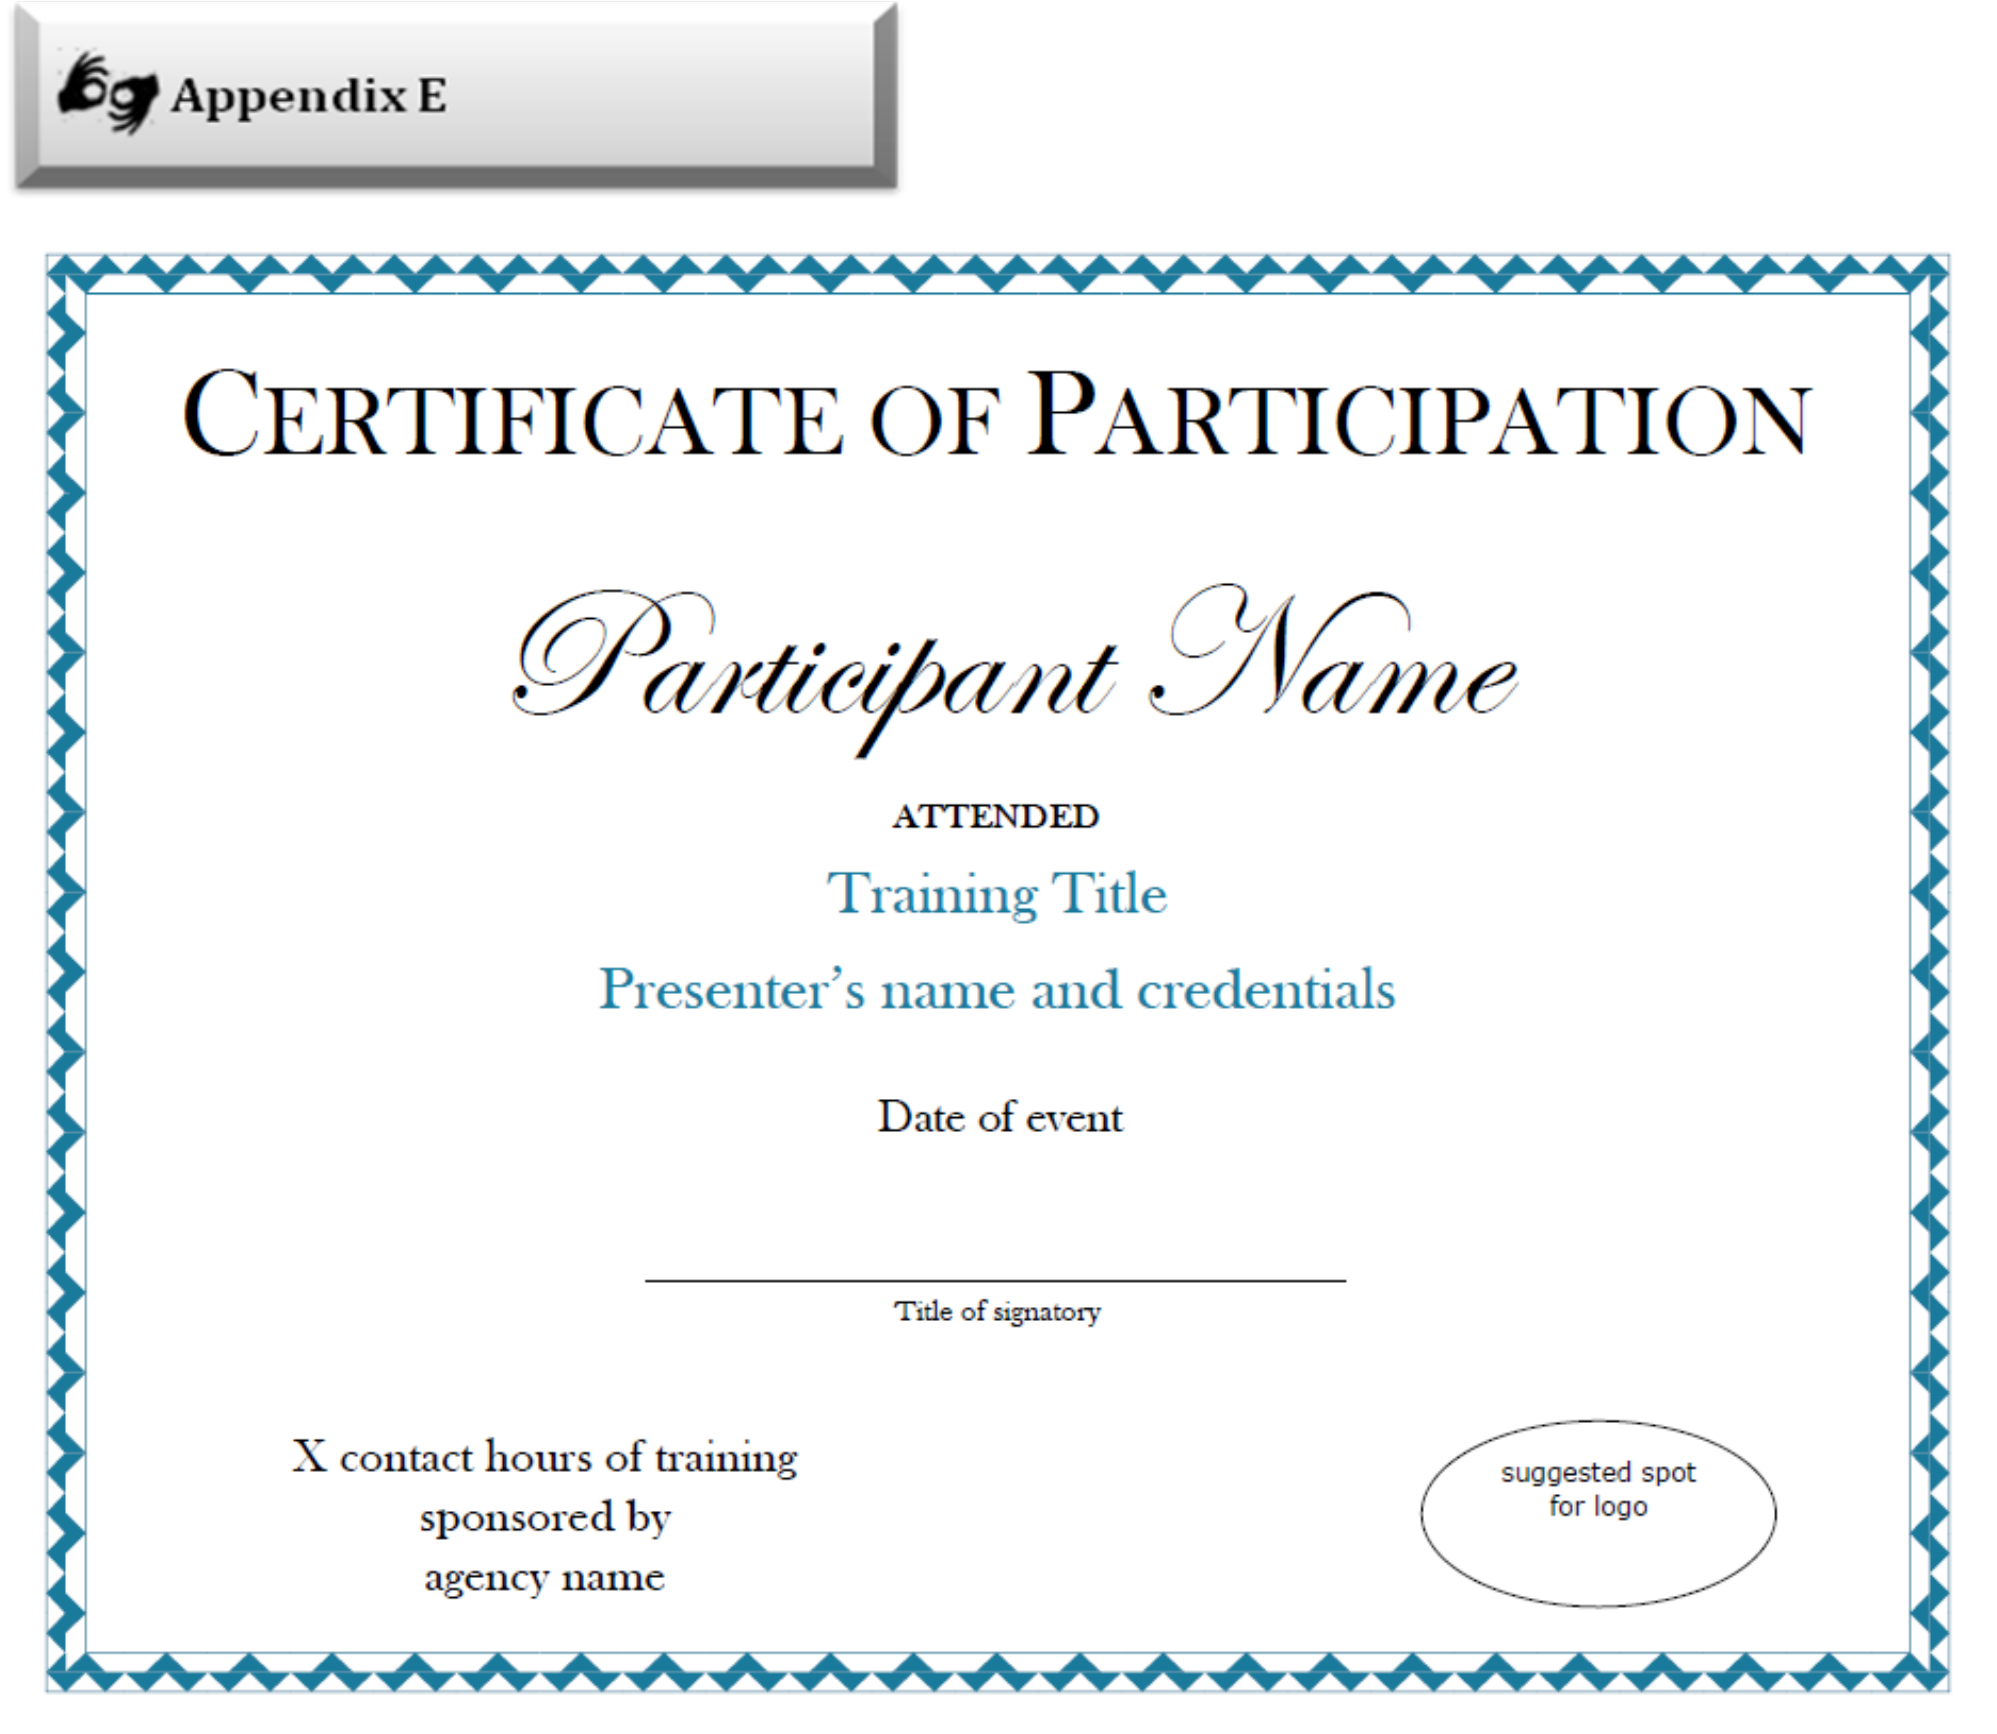 Certificate of Participation Sample Free Download